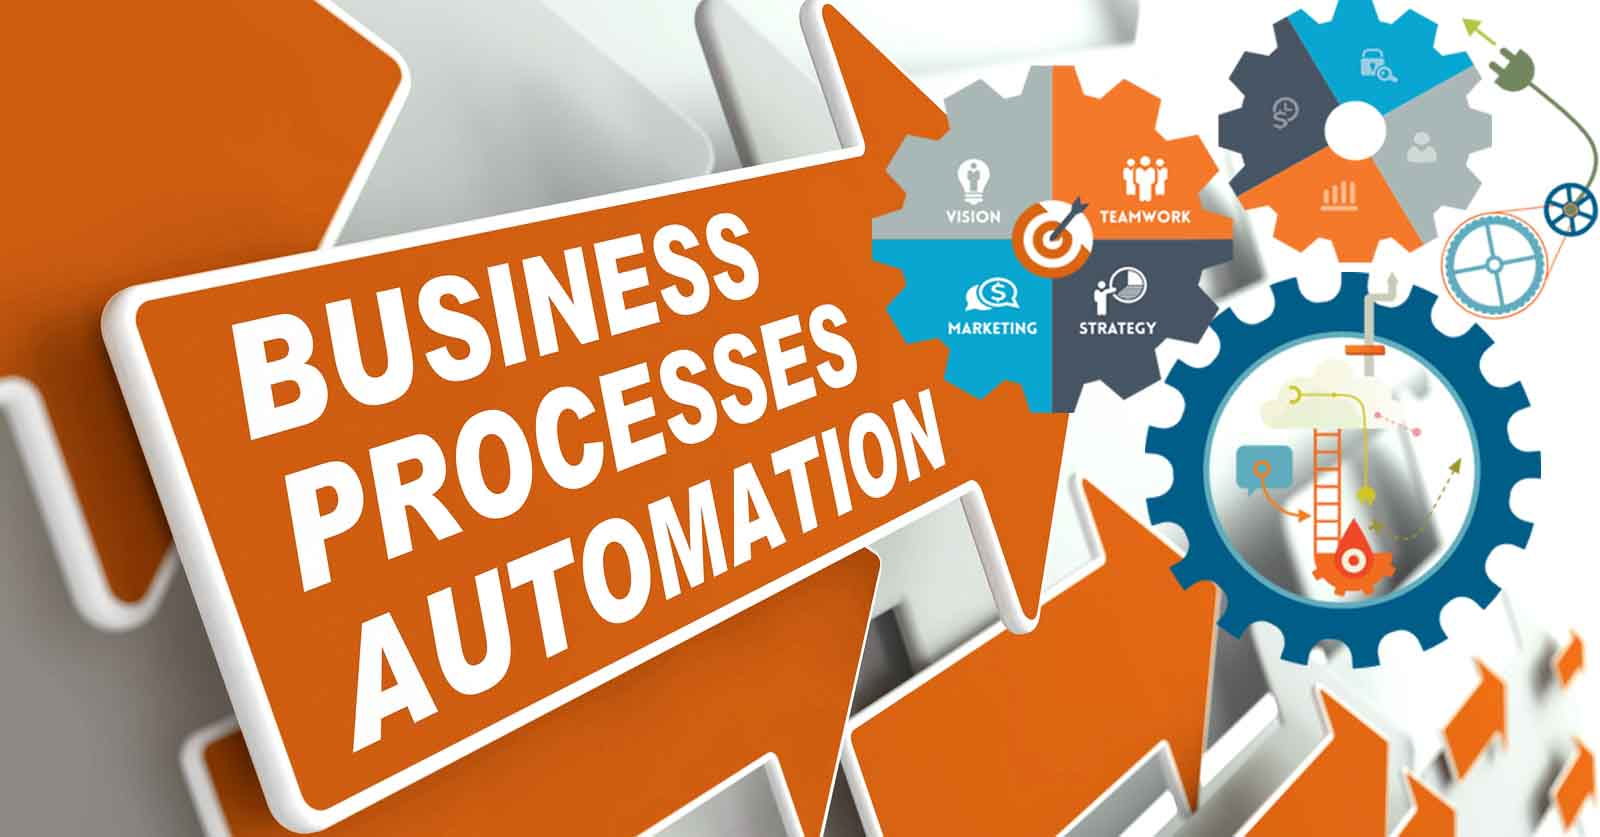 4 Ways to Implement an Automated Workflow for Routine Business Processes